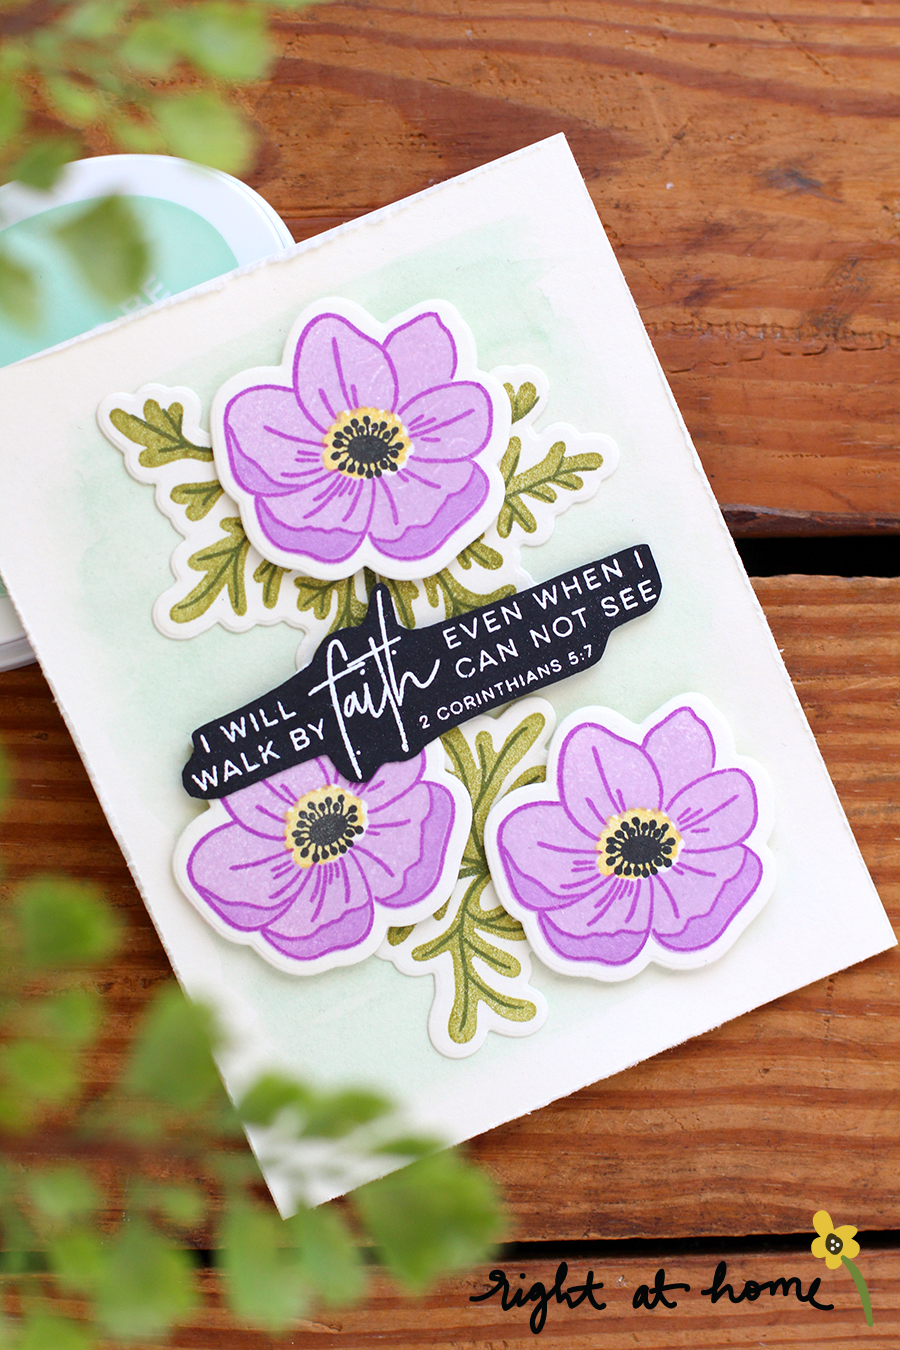 I Will Walk By Faith Anemone Card // National Craft Month Celebration with Right at Home + Simon Says Stamp - rightathomeshop.com/blog